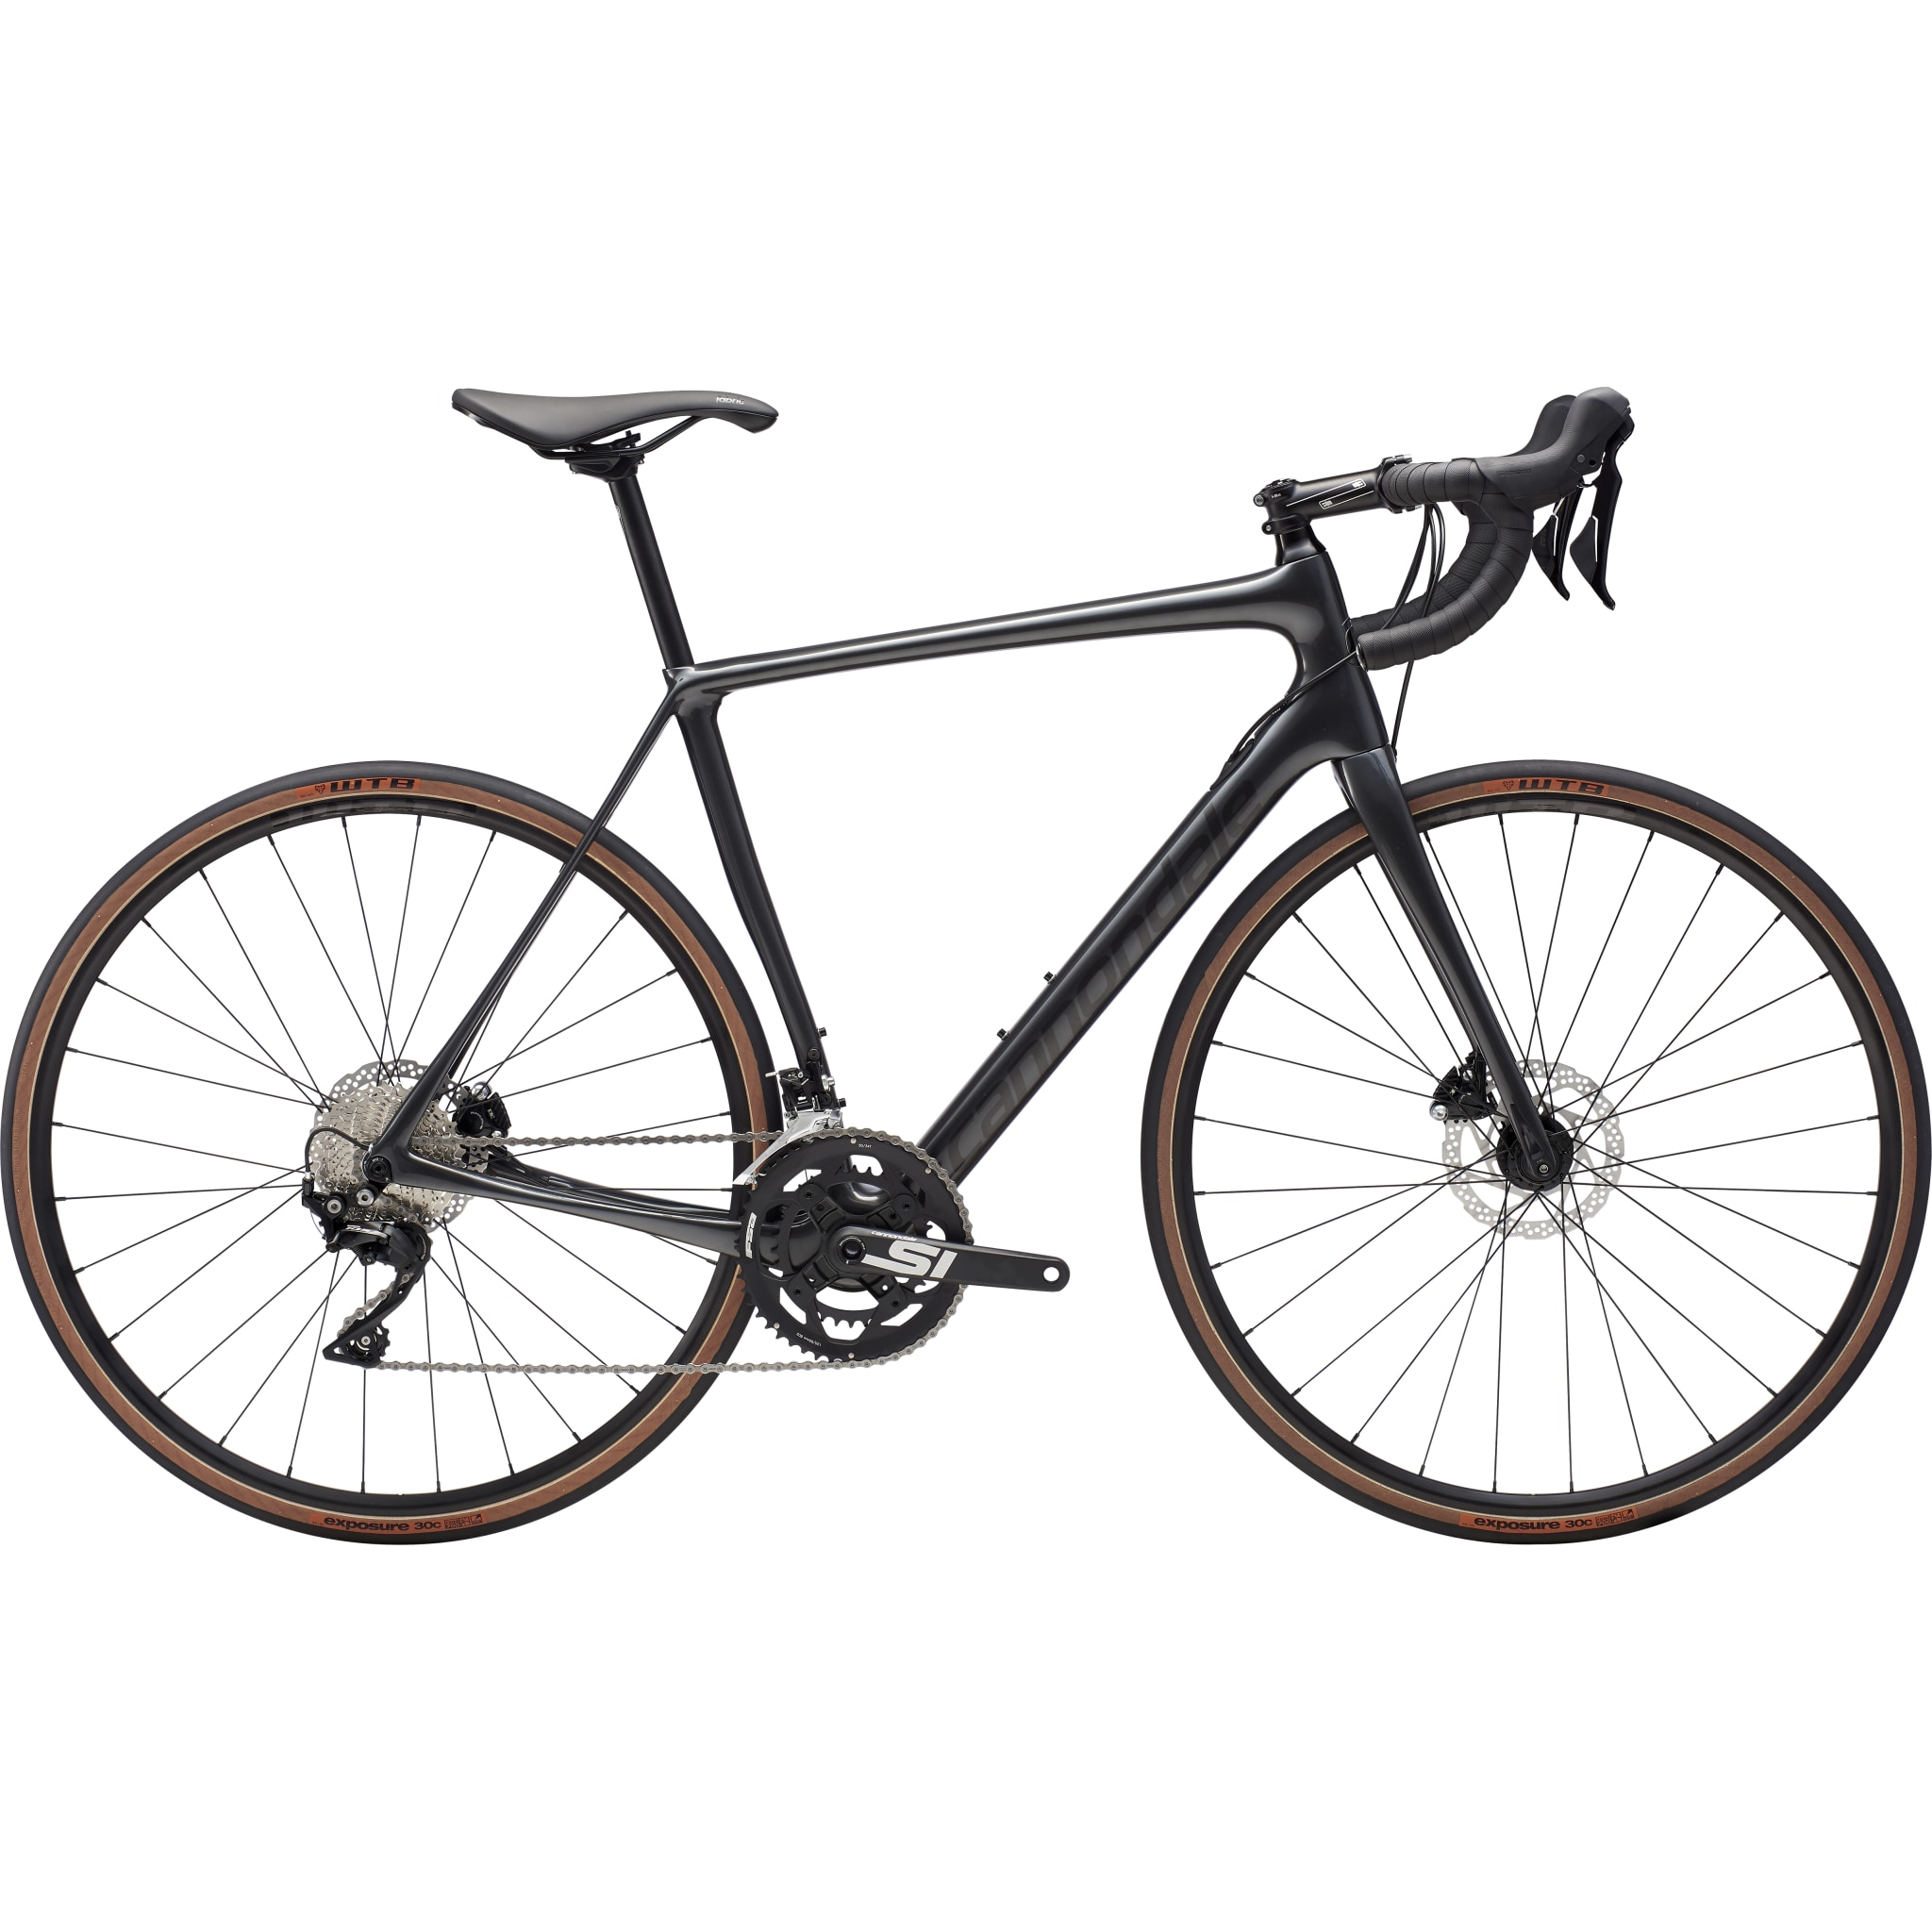 Synapse Carbon Disc SE 105 2019